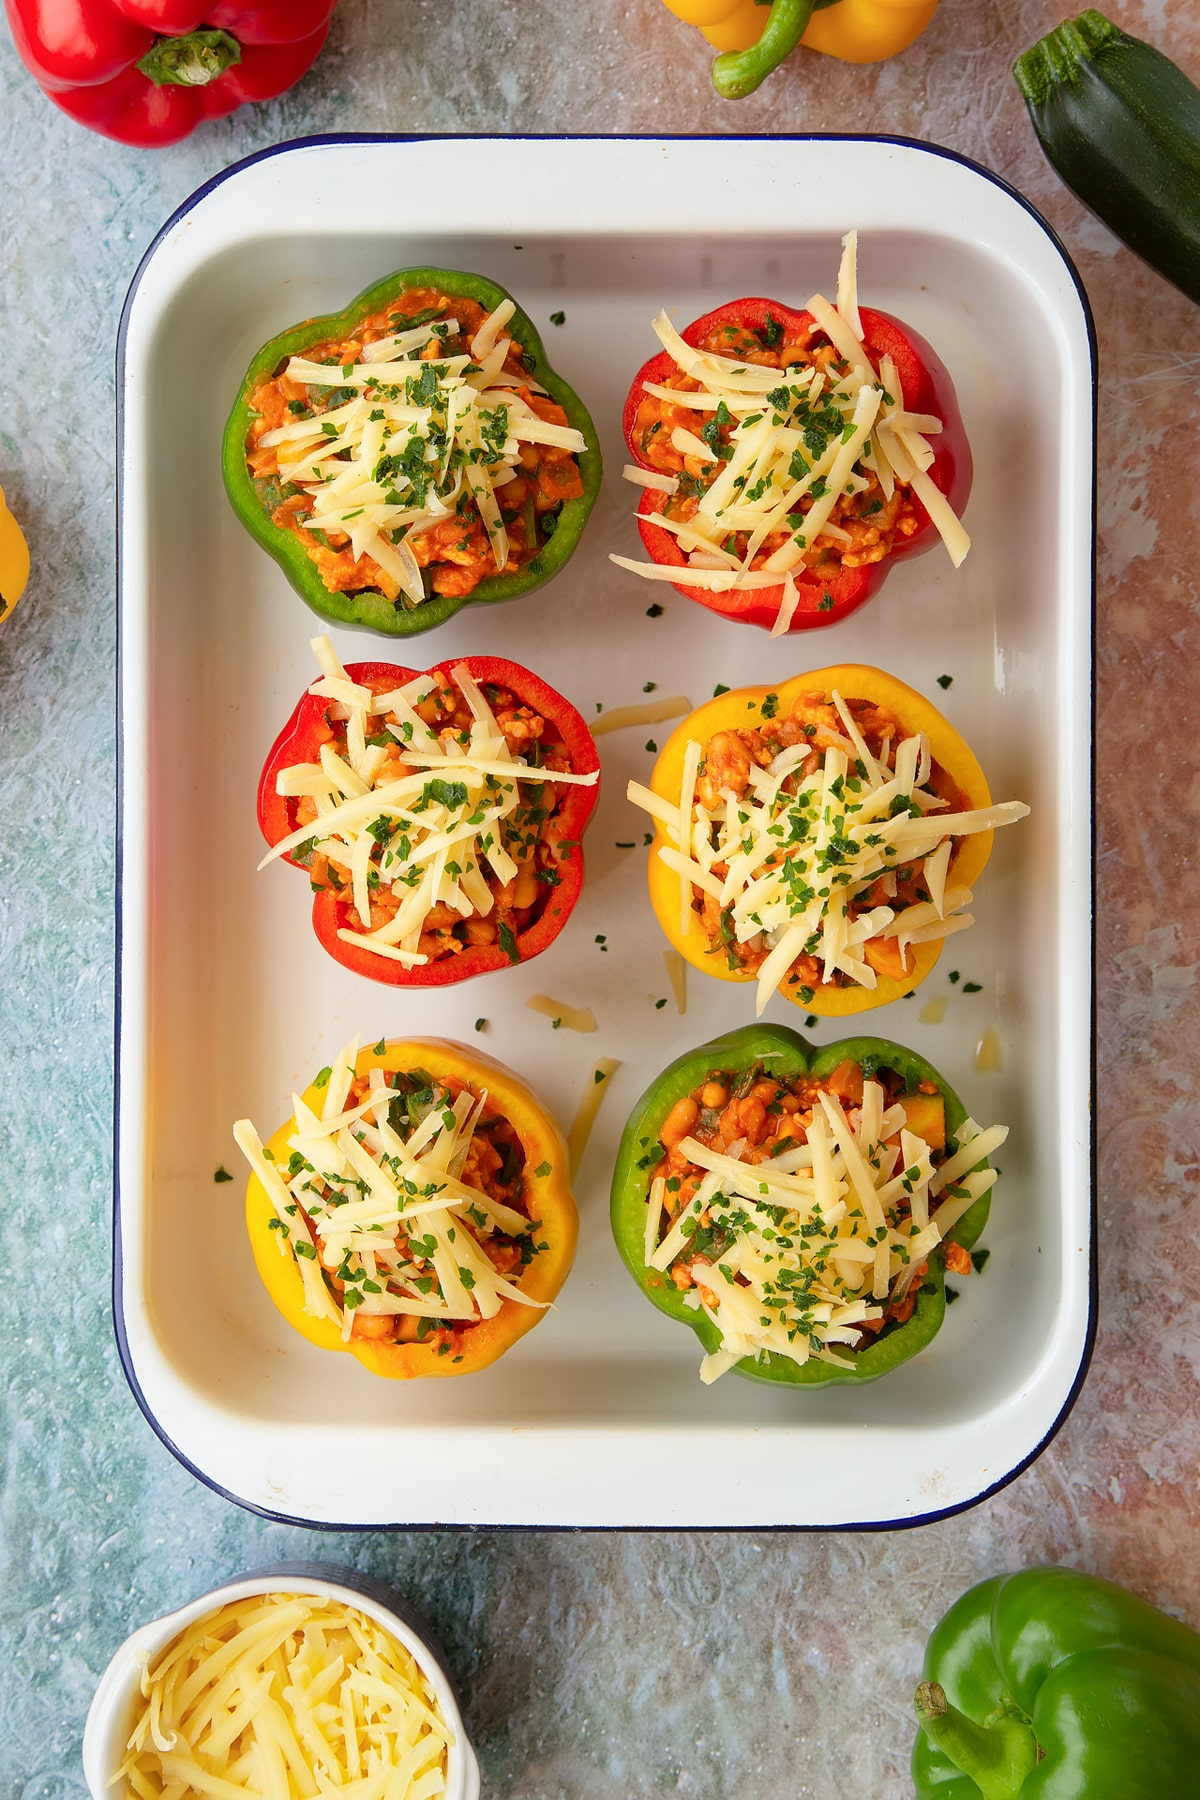 Freshly made baked bean stuffed peppers in a white roasting tray.